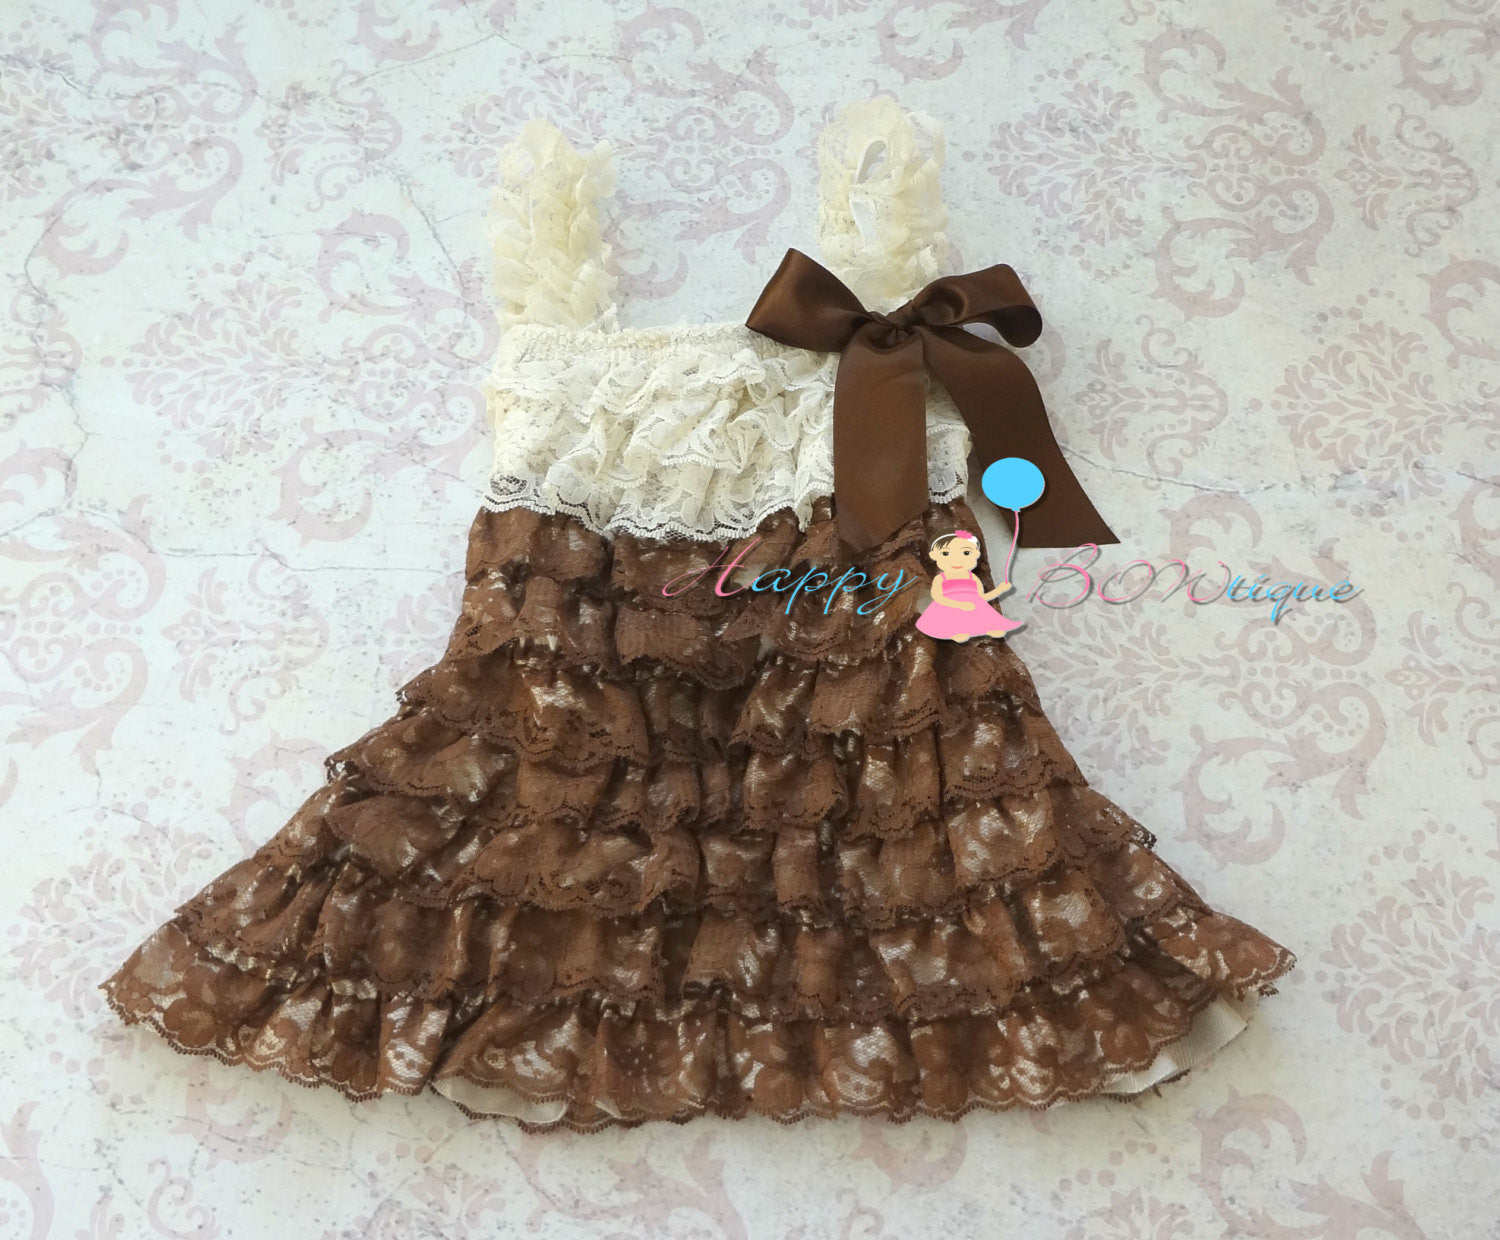 Chocolate Beige Lace Dress - Happy BOWtique - children's clothing, Baby Girl clothing